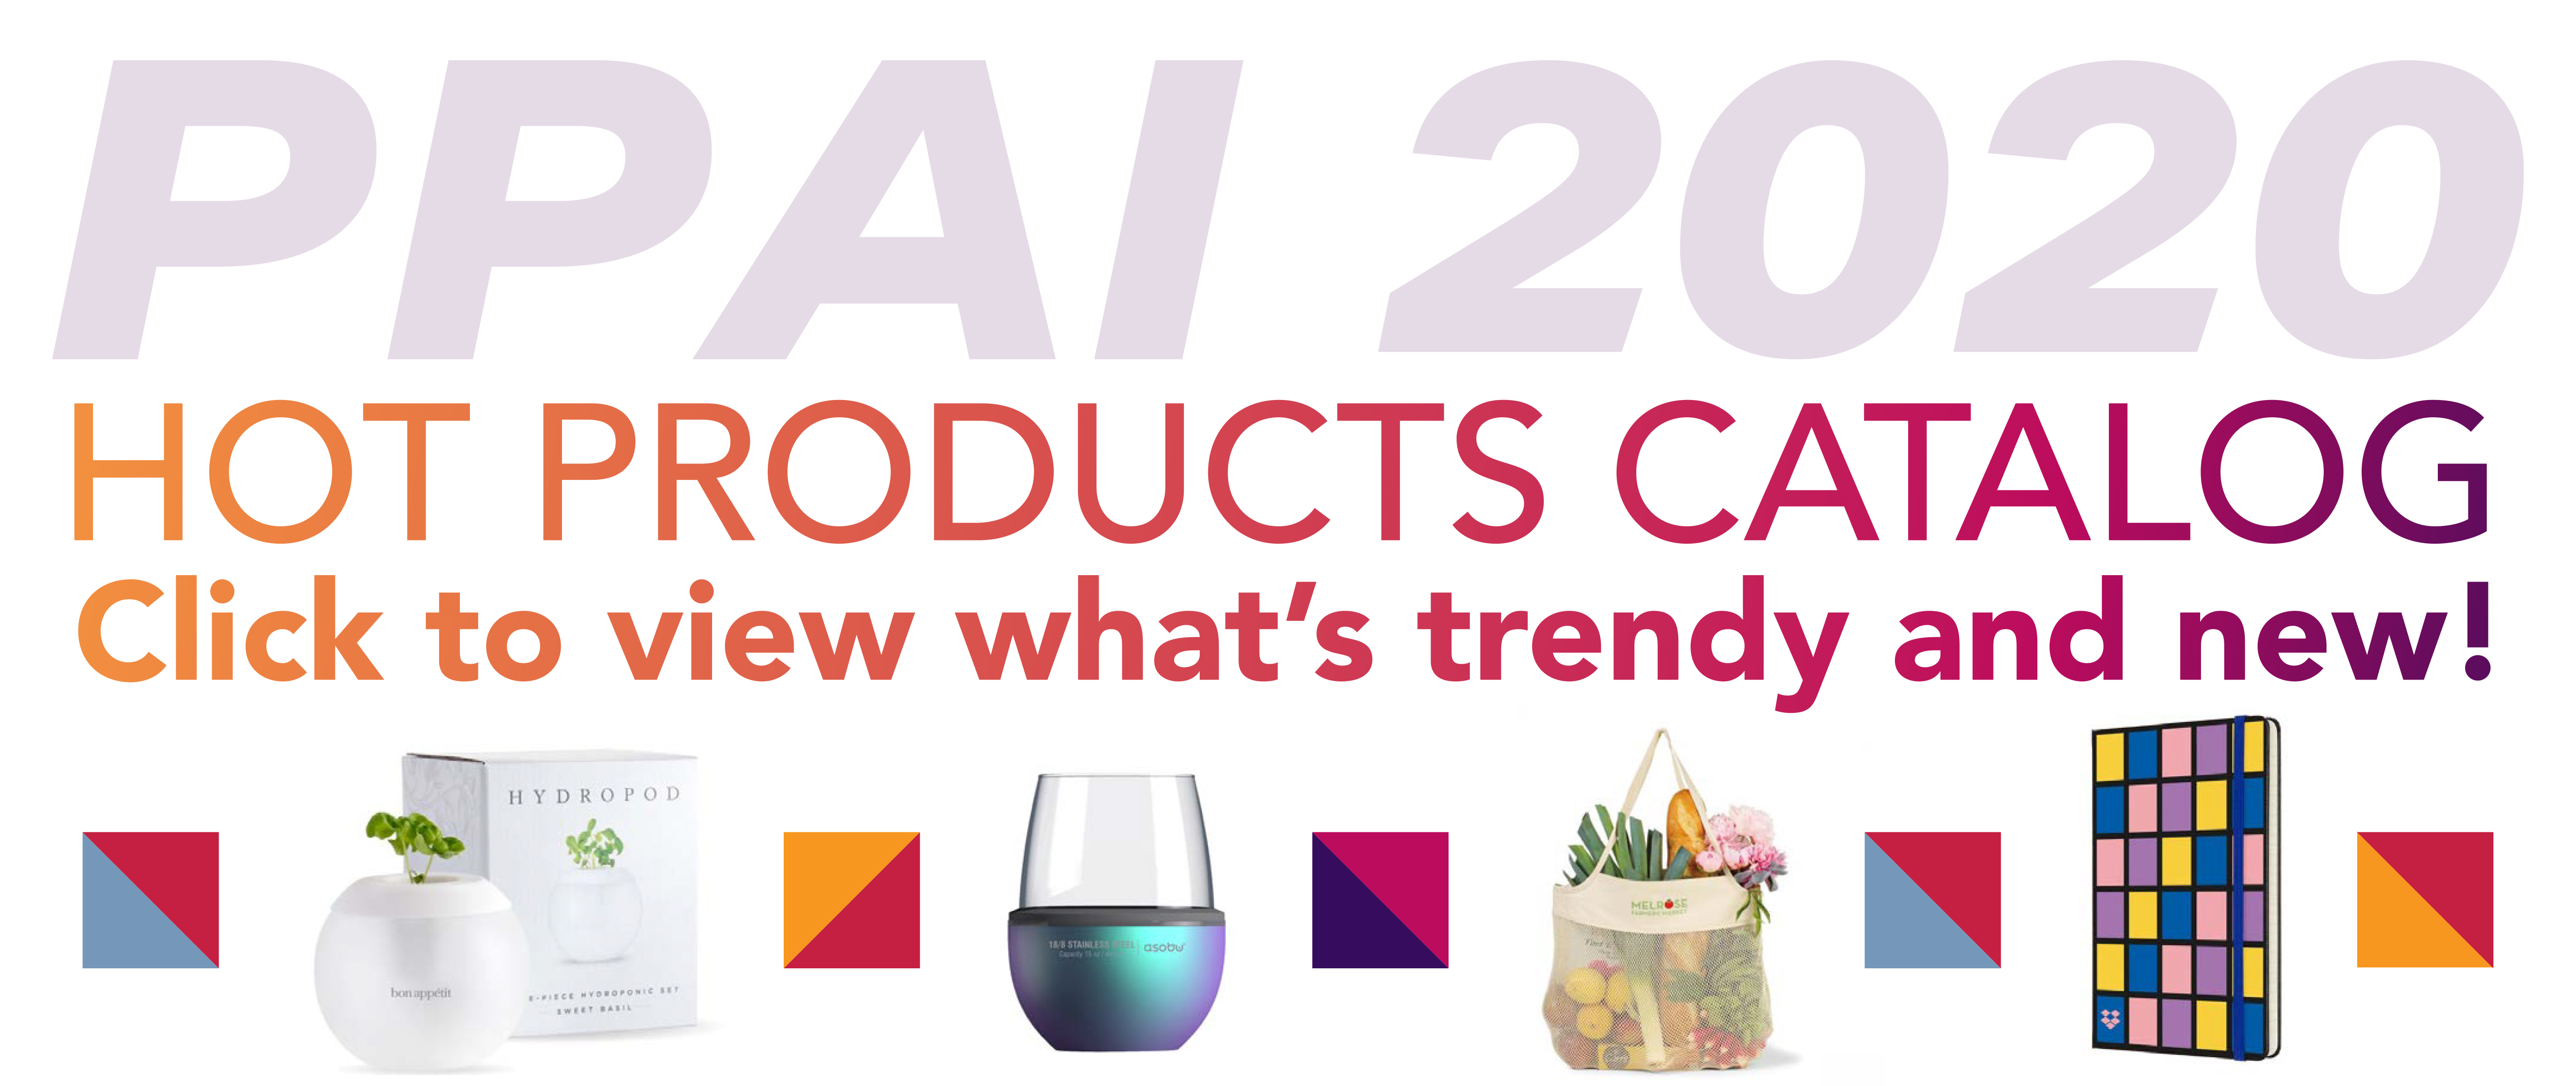 PPAI 2020 Hot Products Catalog